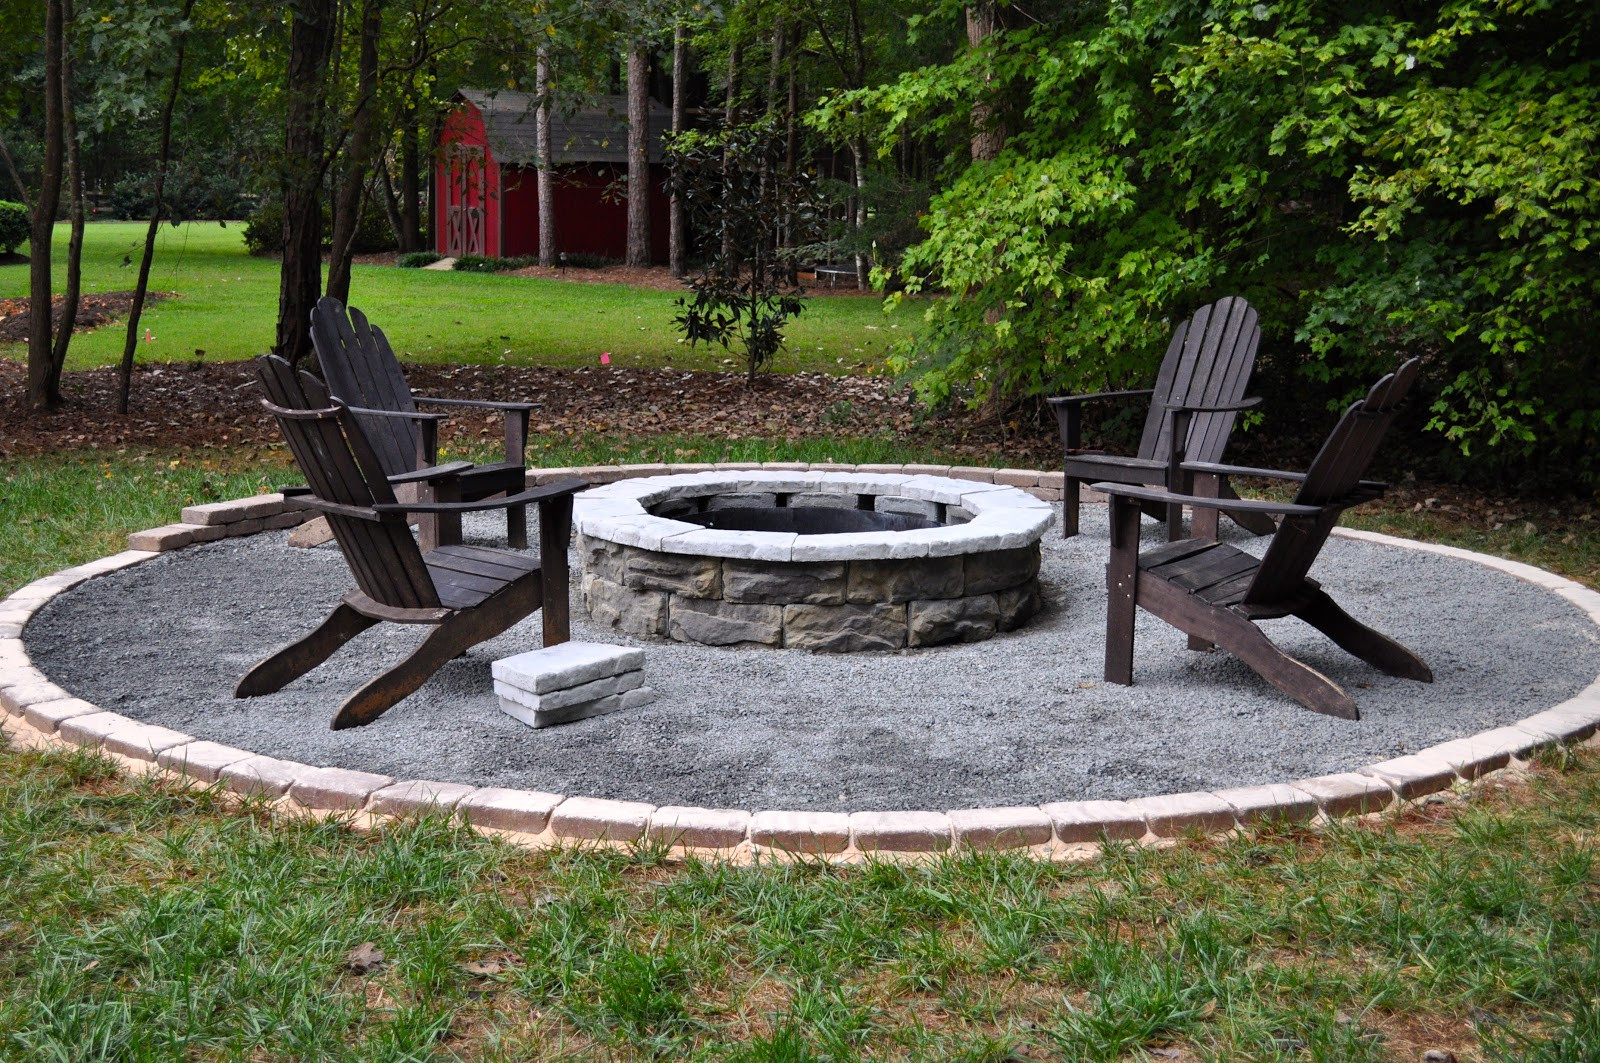 Best ideas about DIY Small Fire Pit . Save or Pin The Collected Interior Our Diy Fire Pit Now.